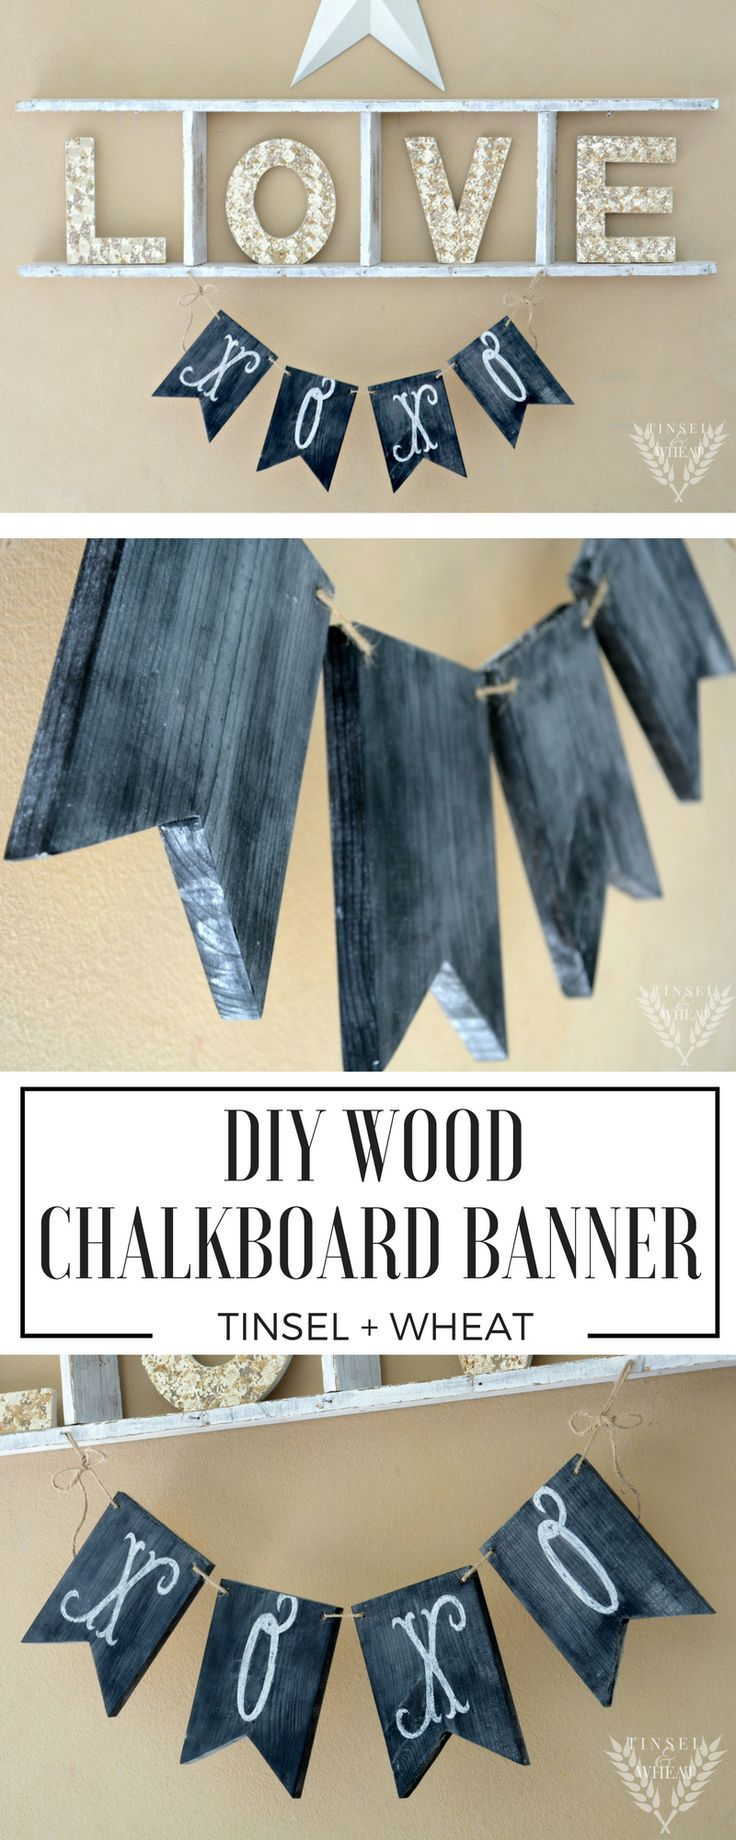 diy wood chalkboard banner step by step pictures and prefect for holidays or